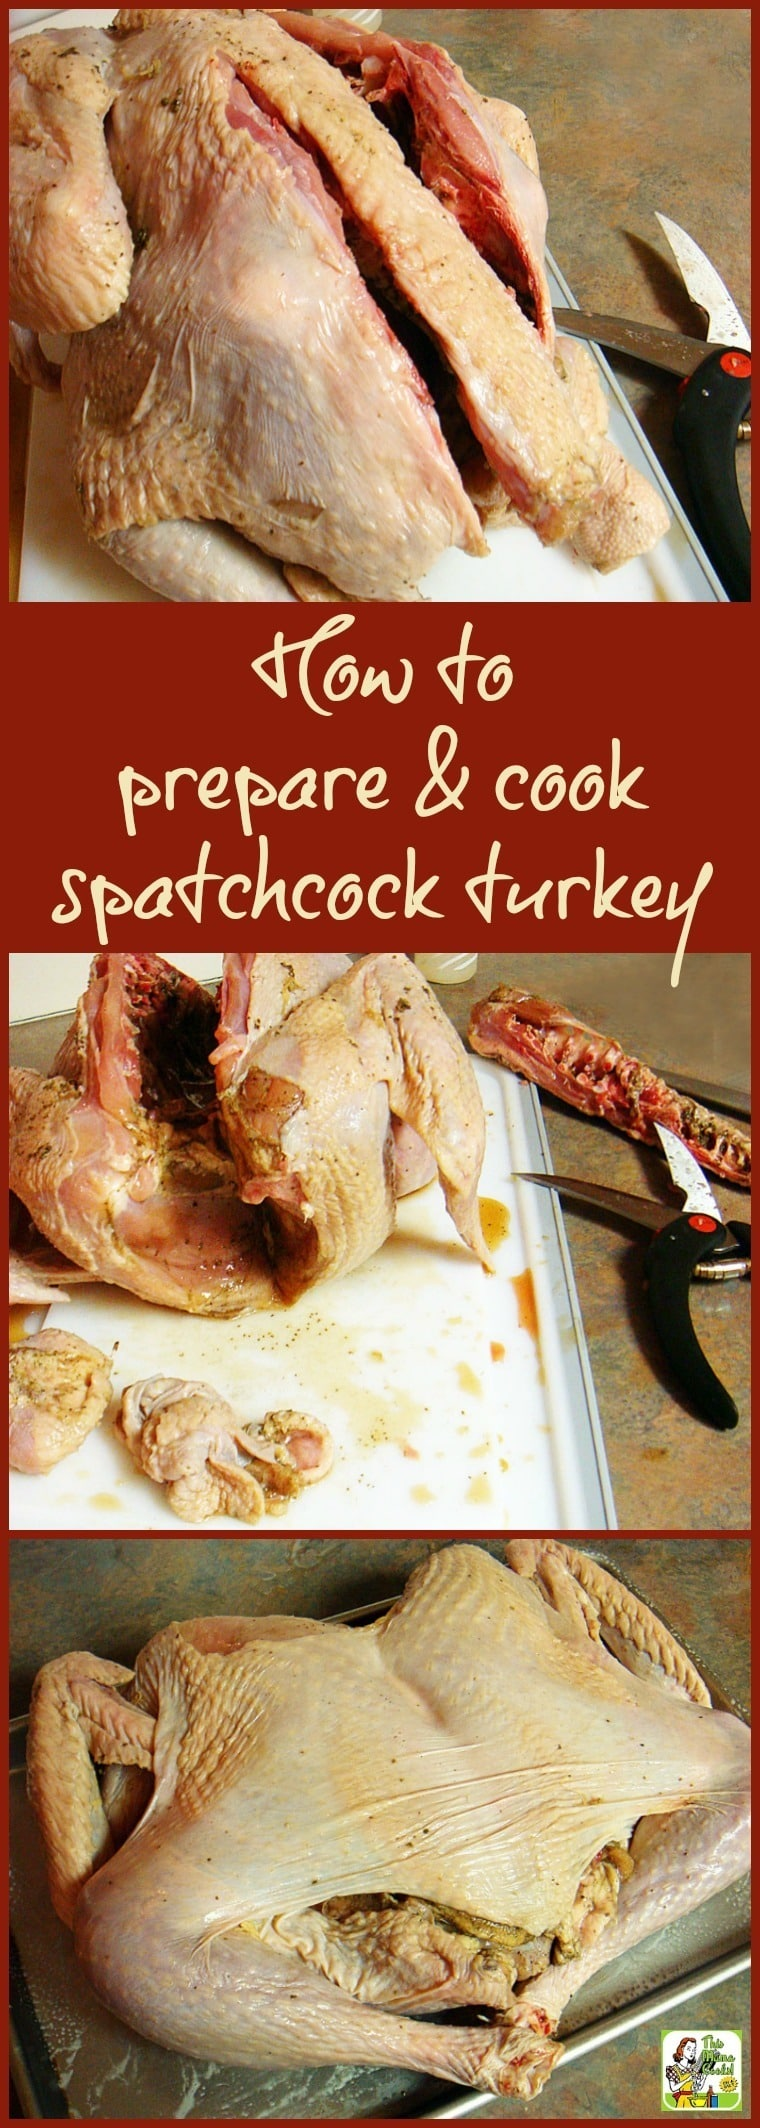 If you want to shorten turkey cooking time in the oven or in the smoker grill, spatchcock your turkey! Click to learn how to prepare and cook a spatchcock turkey for Thanksgiving, Christmas or BBQ cookouts.